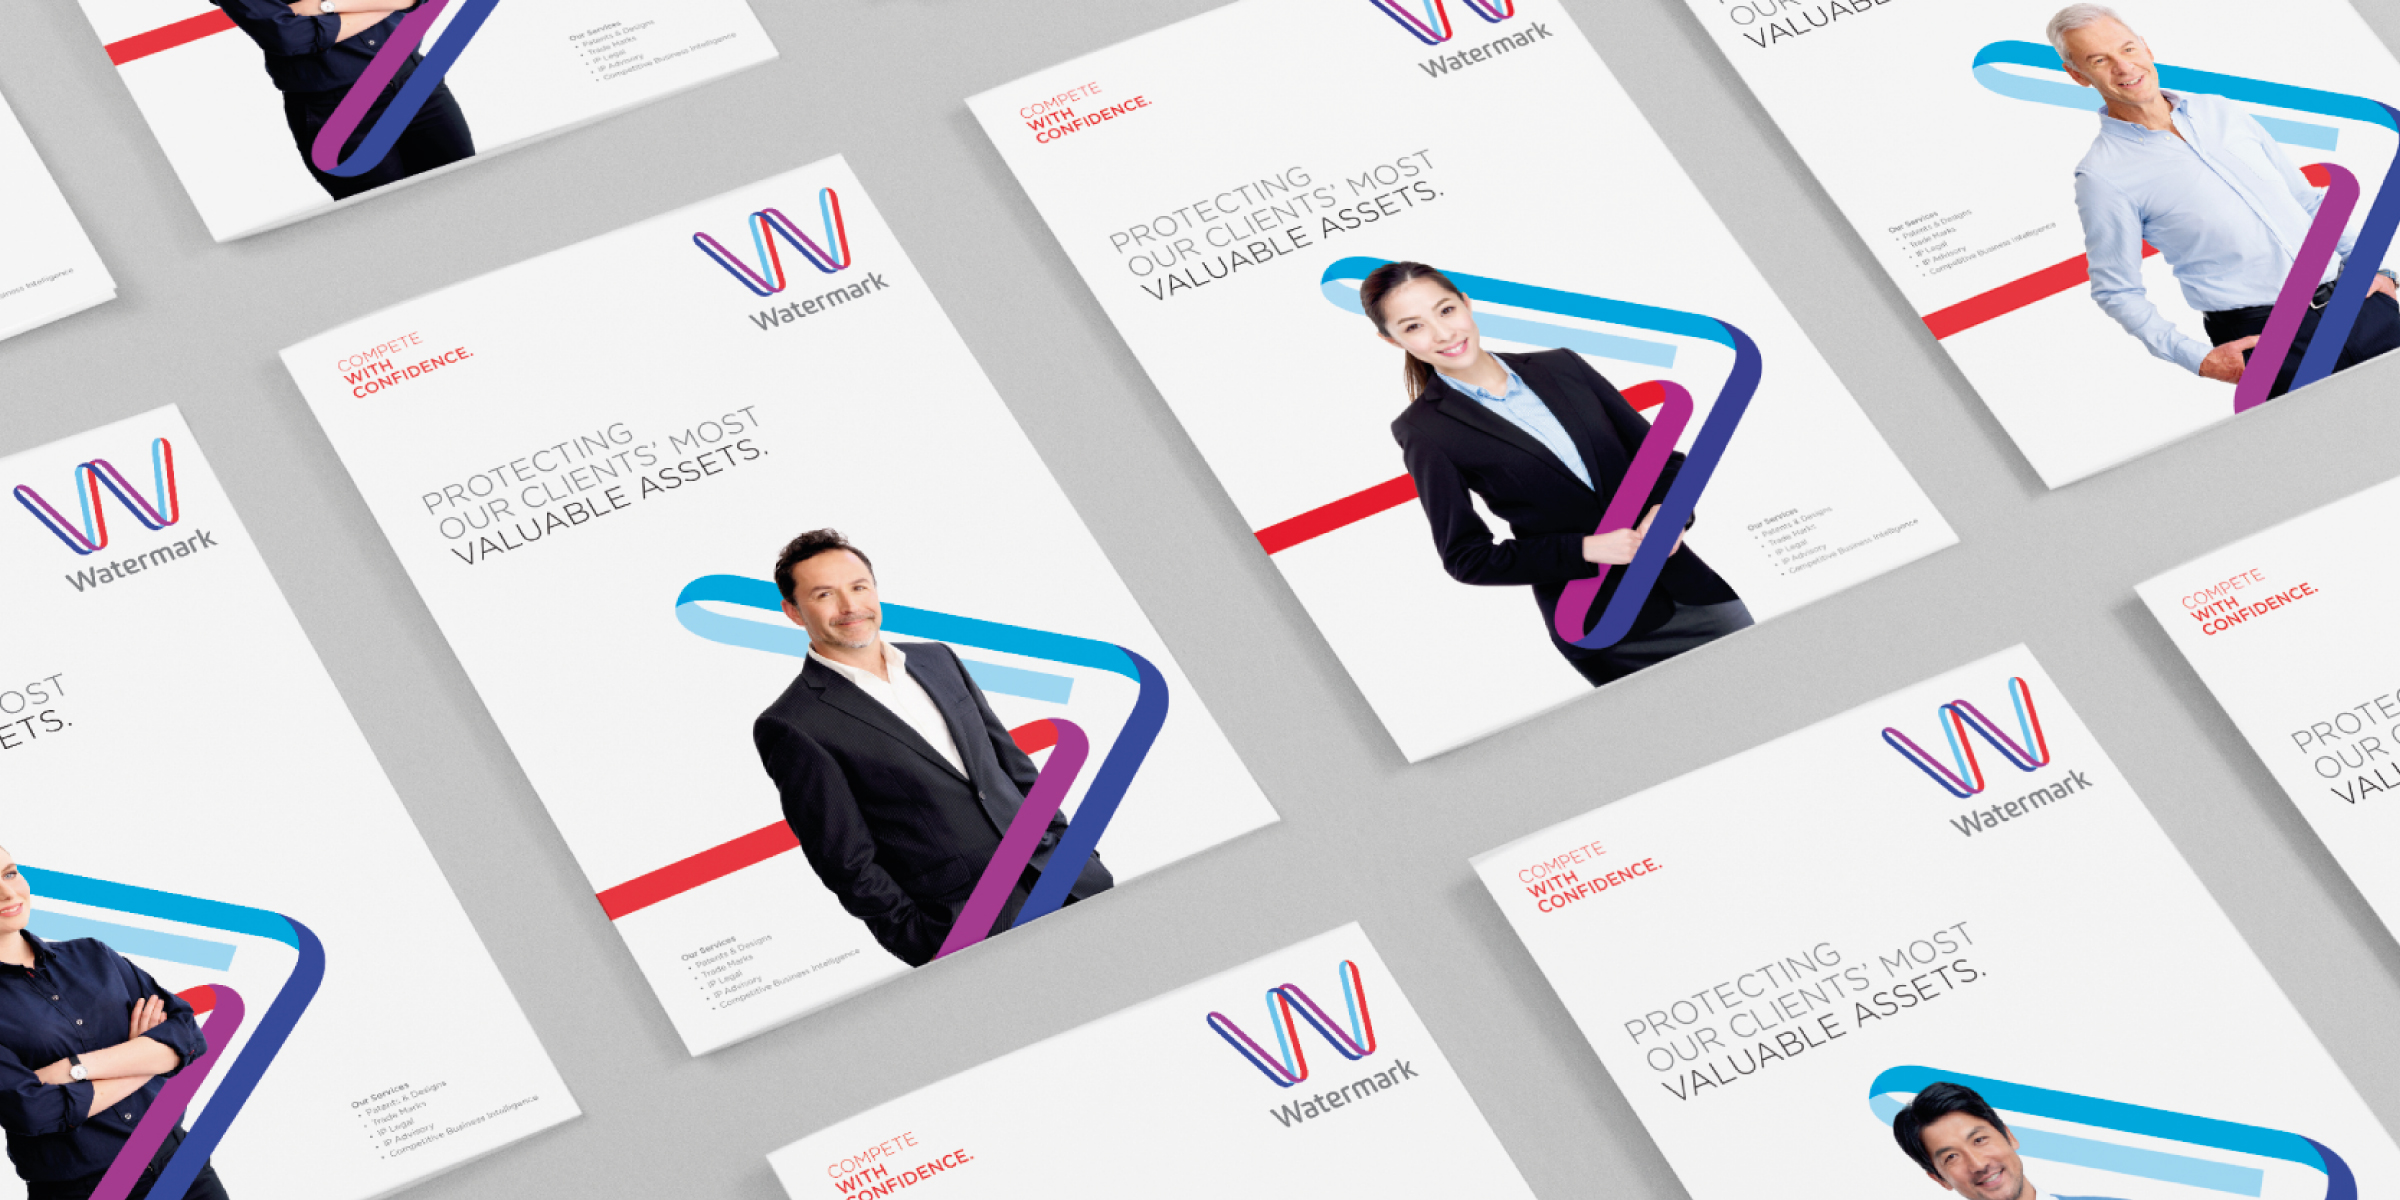 Watermark Brand Identity Brochure Cover Design